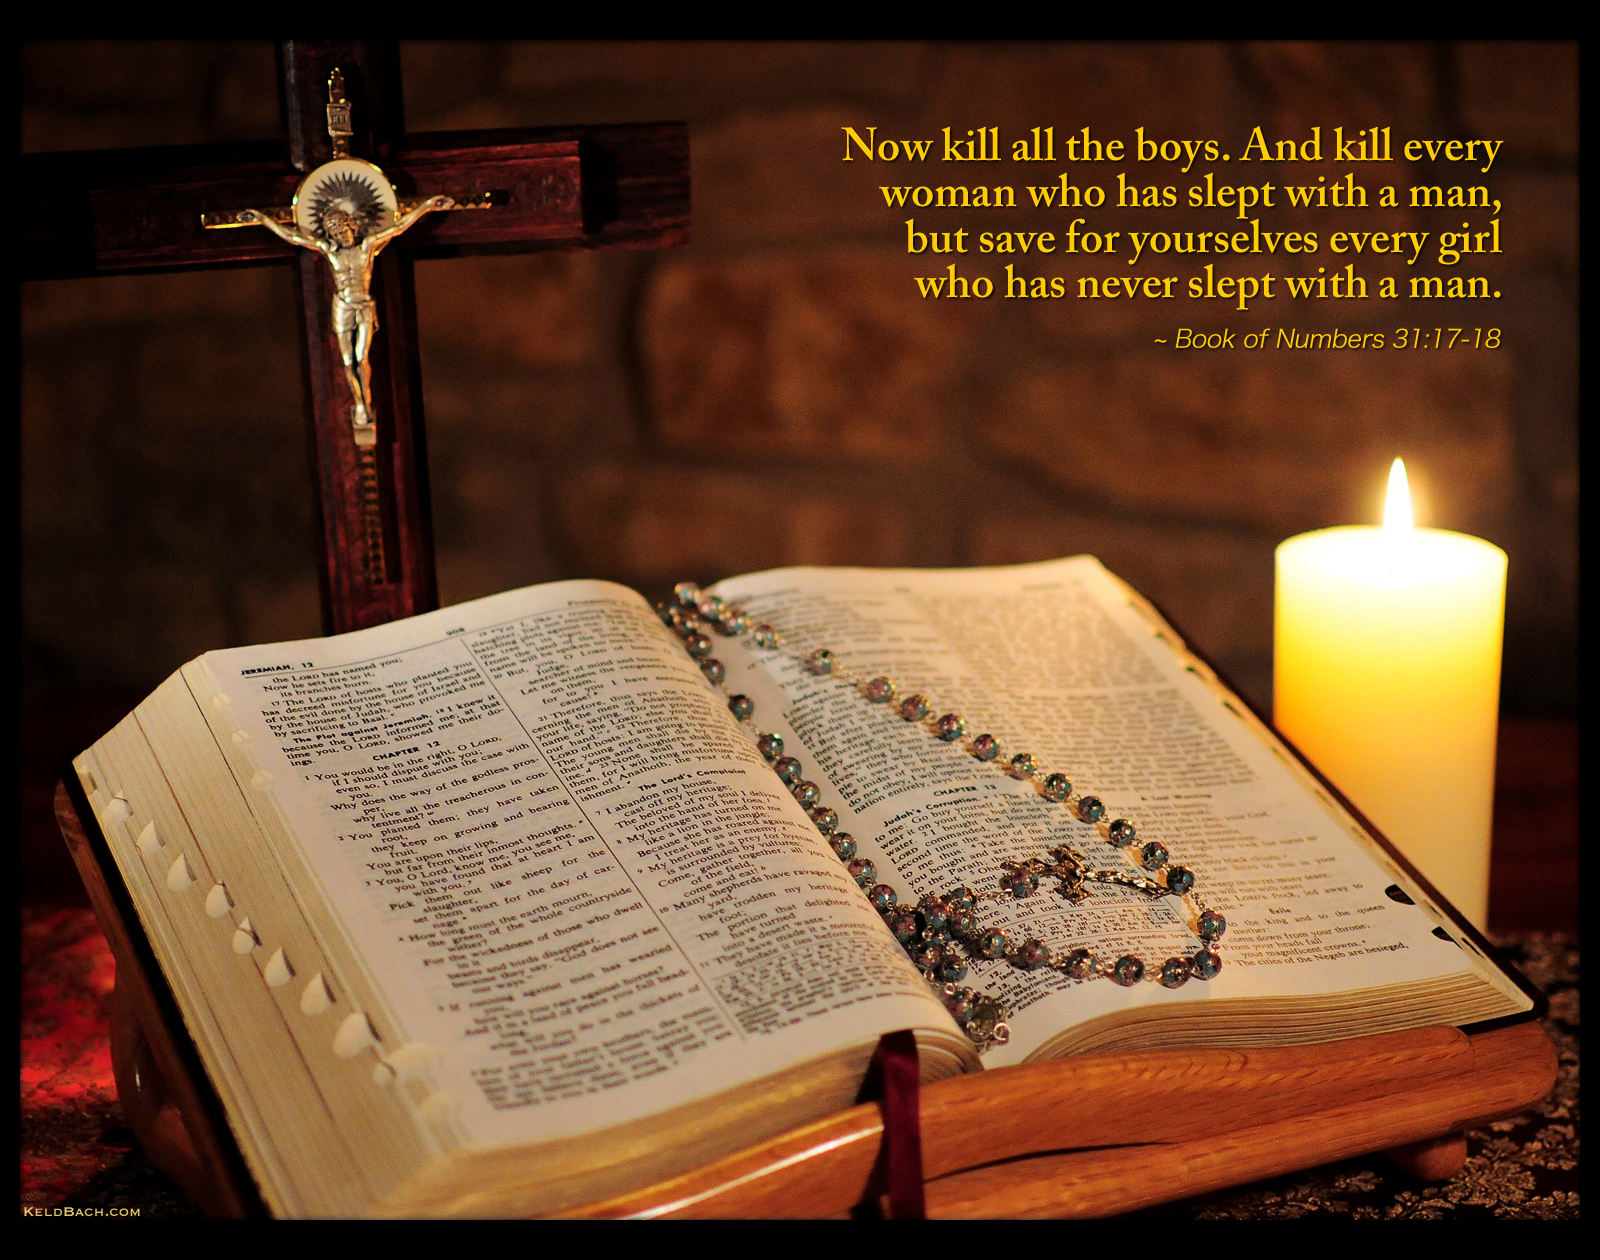 About Vengeance in the Holy Bible by KeldBach